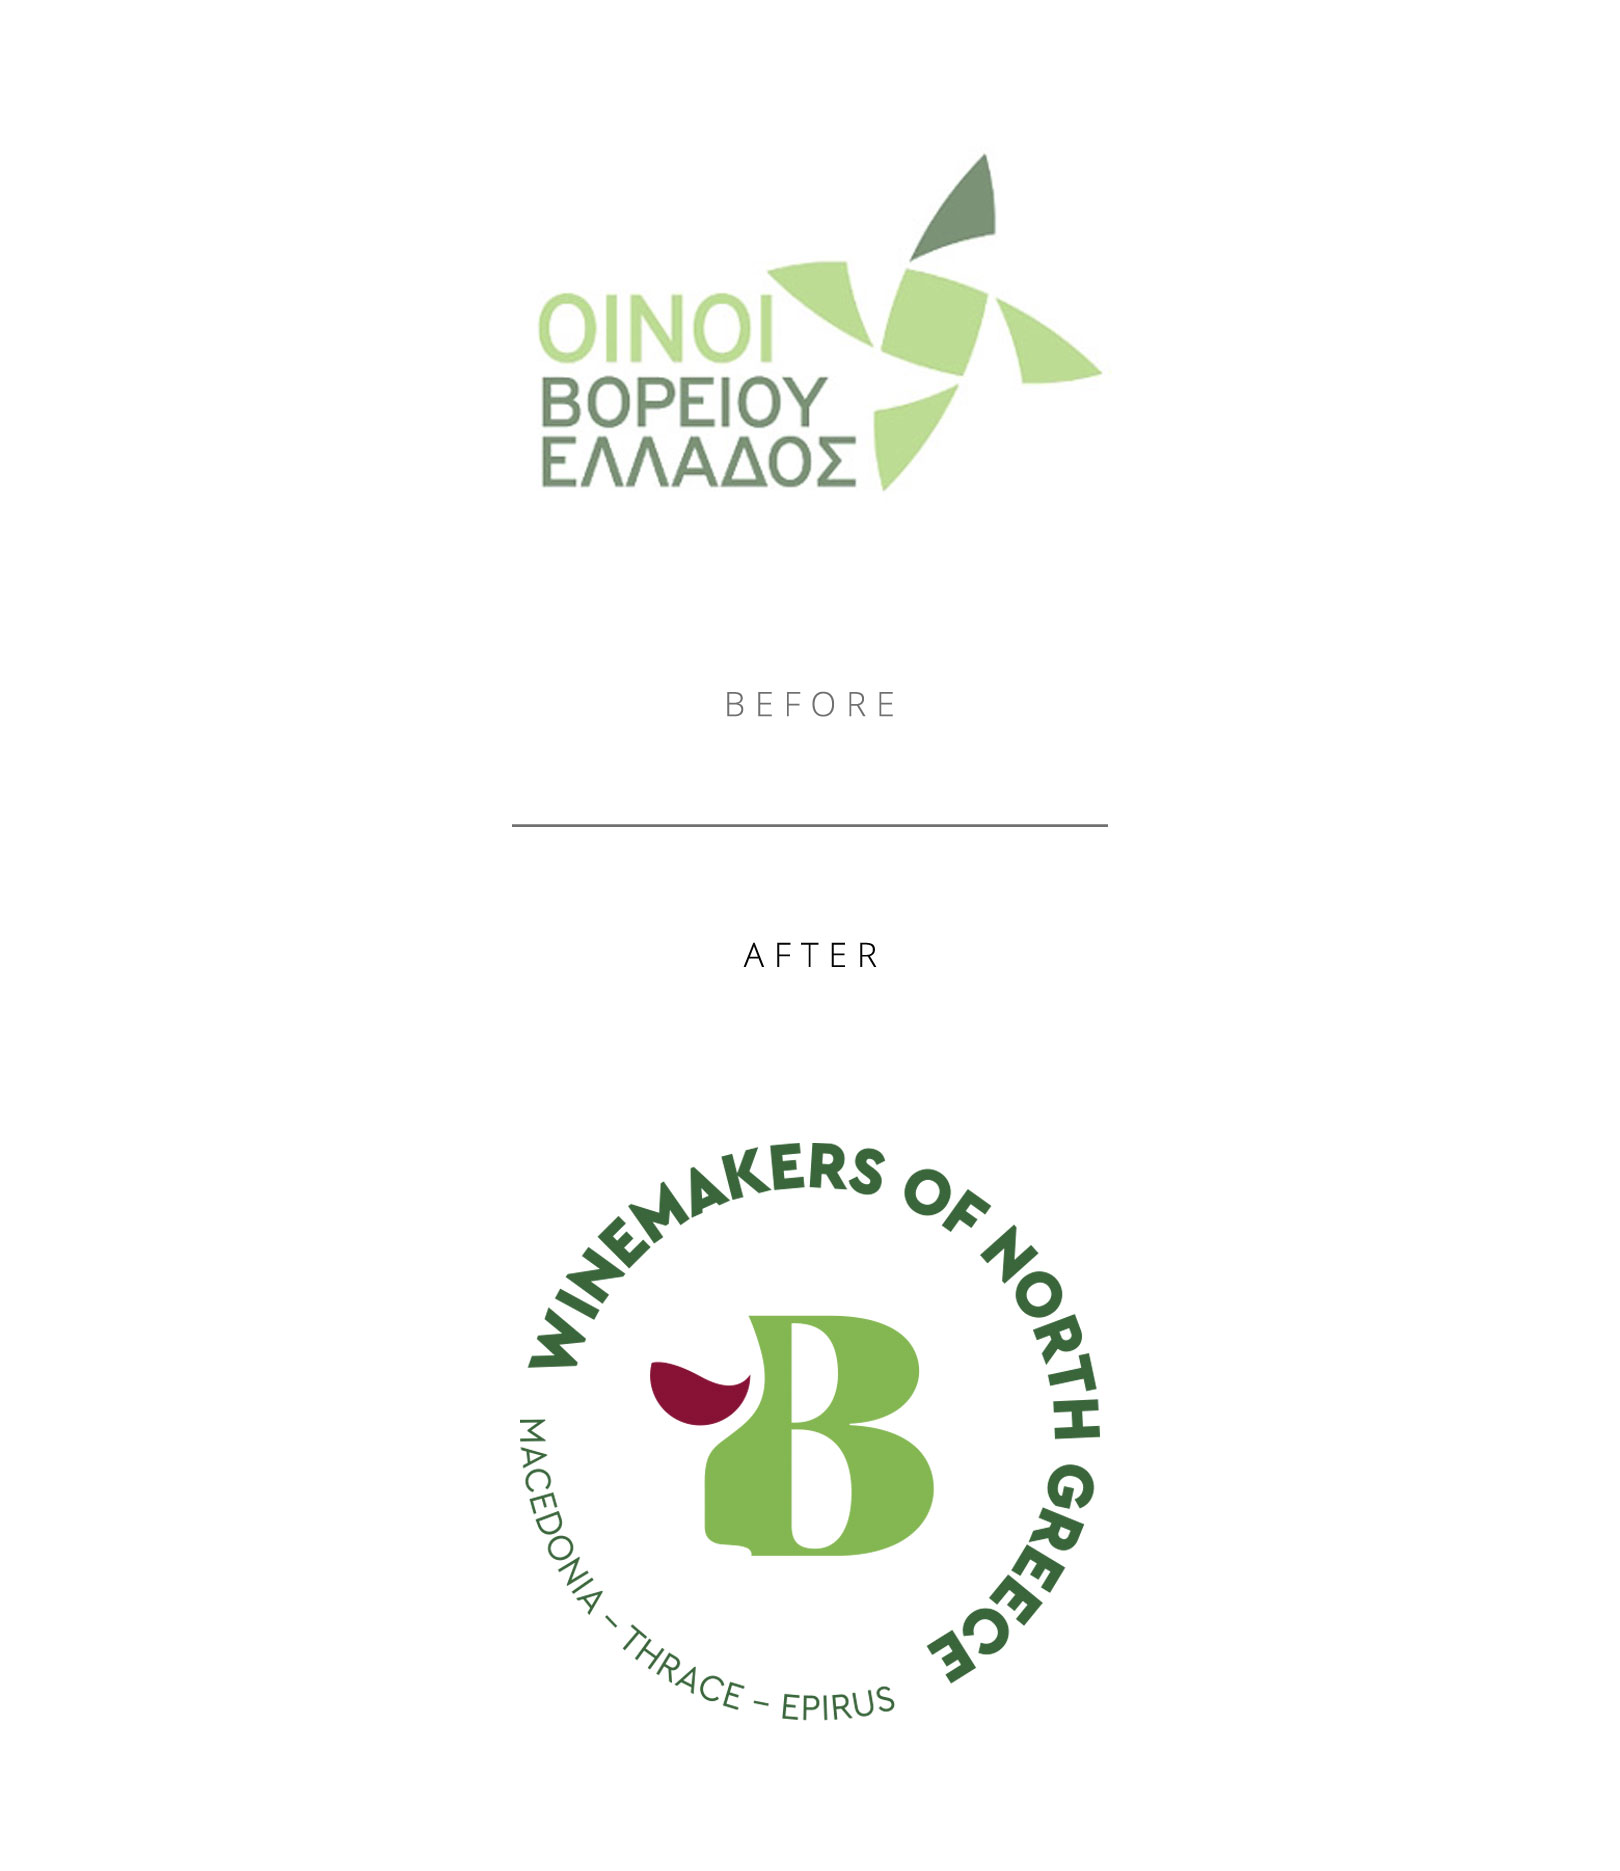 Winemakers of North Greece logo before and after, by Two Yellow Feet